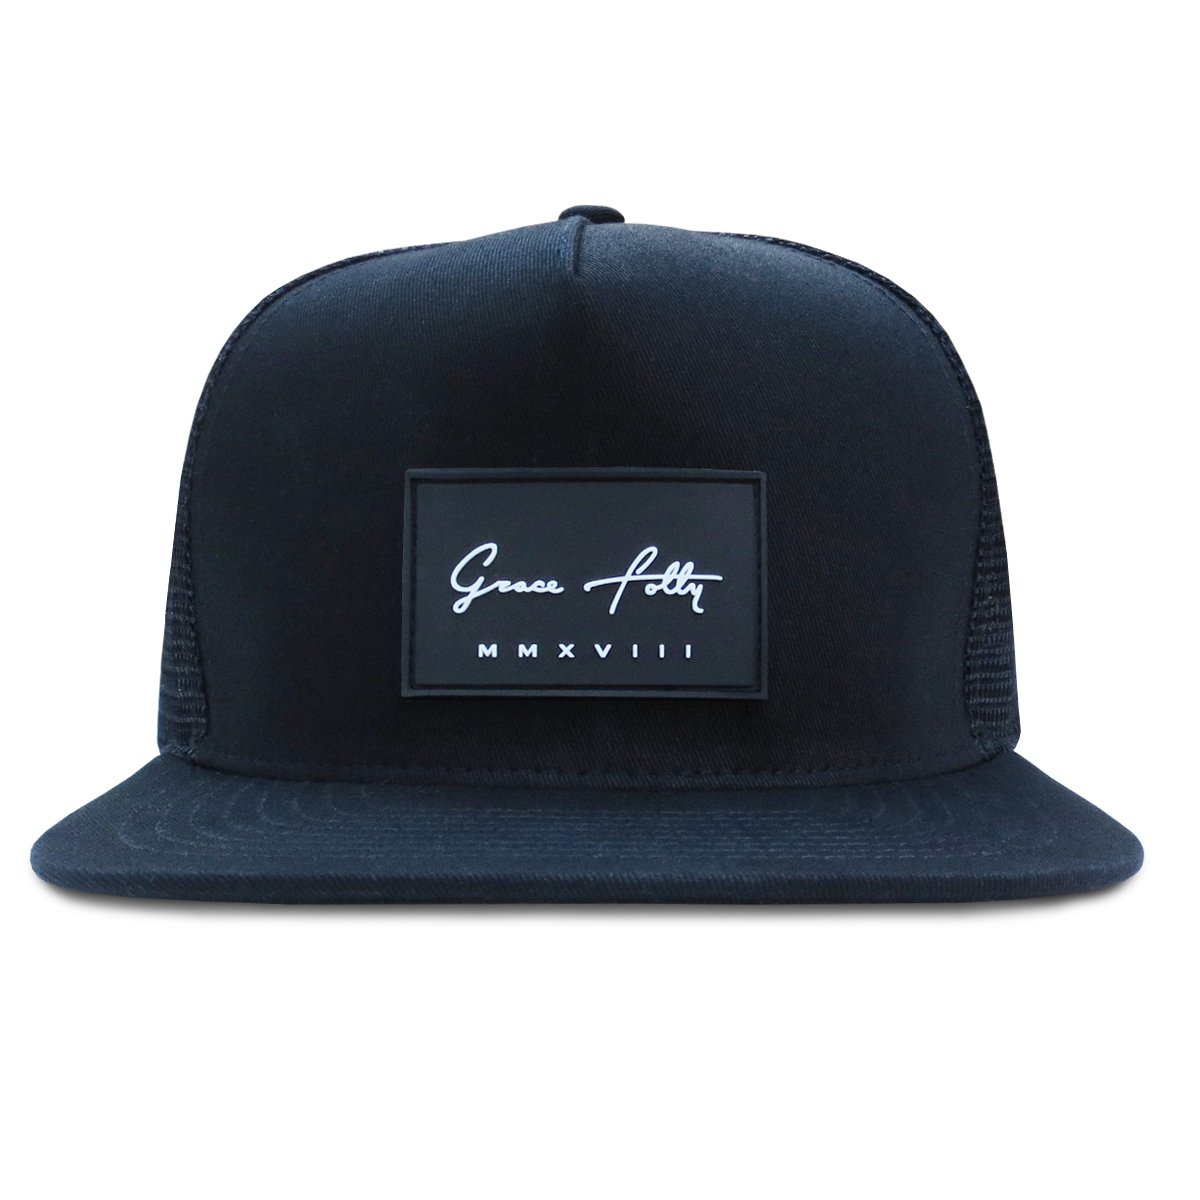 Grace Folly Trucker Hat for Men & Women. Snapback Mesh Caps Black at Amazon Mens Clothing store: